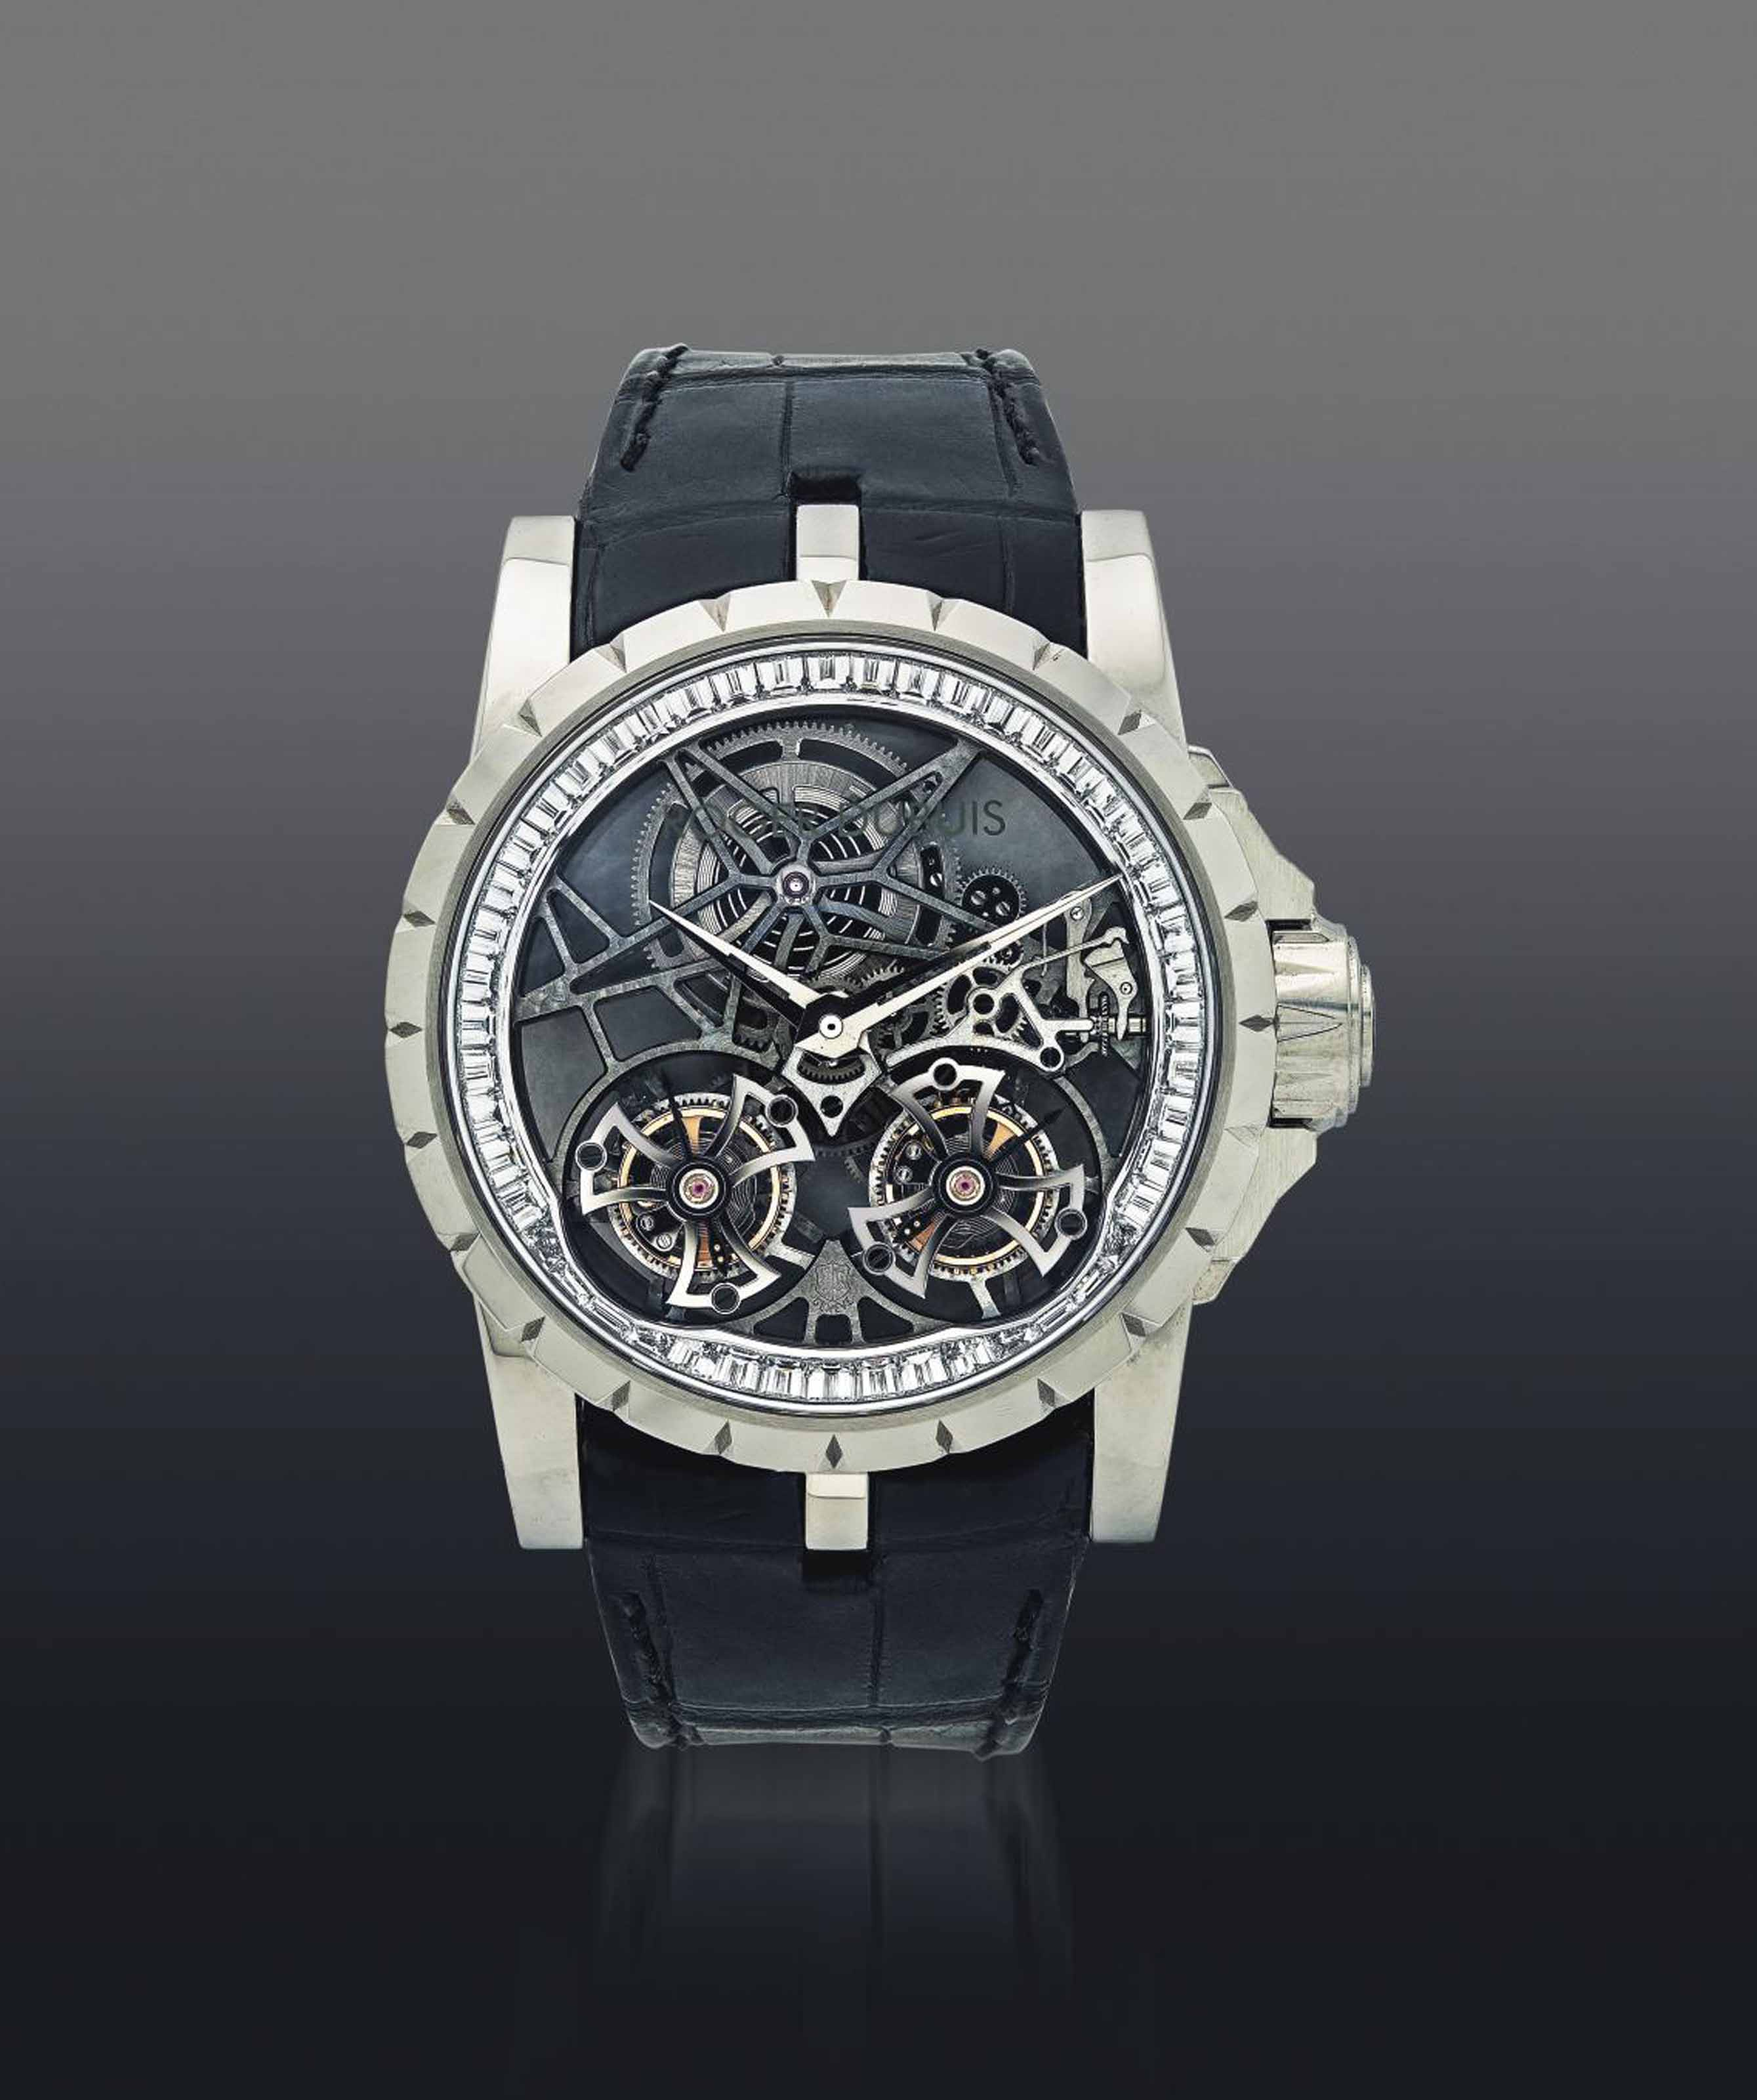 ROGER DUBUIS. AN EXTREMELY FINE AND VERY RARE 18K WHITE GOLD AND DIAMOND-SET LIMITED EDITION SKELETONIZED DOUBLE TOURBILLON WRISTWATCH